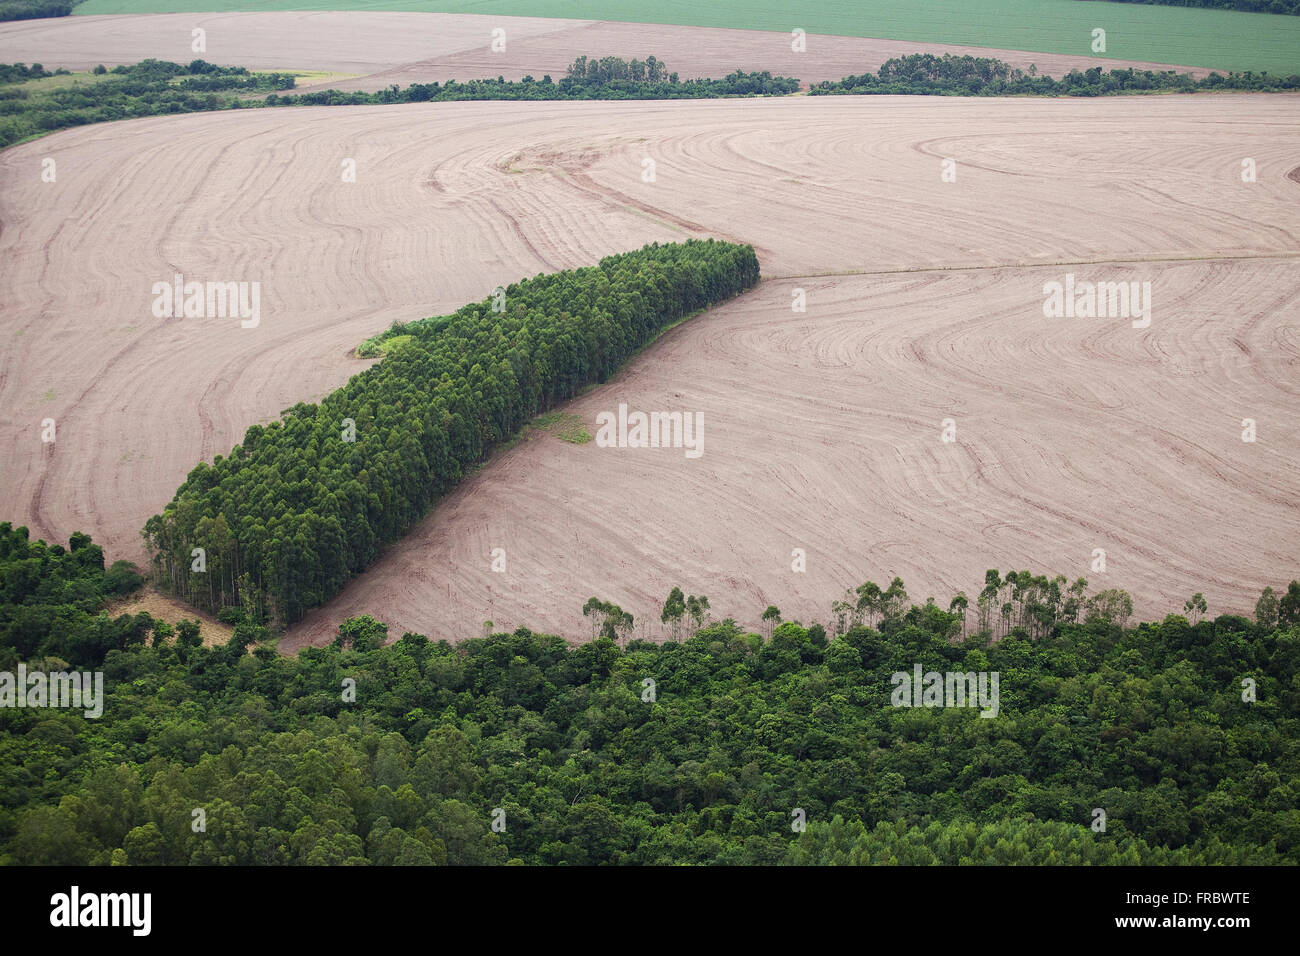 Countryside with cultivated area and area with preserved native forest - Stock Image